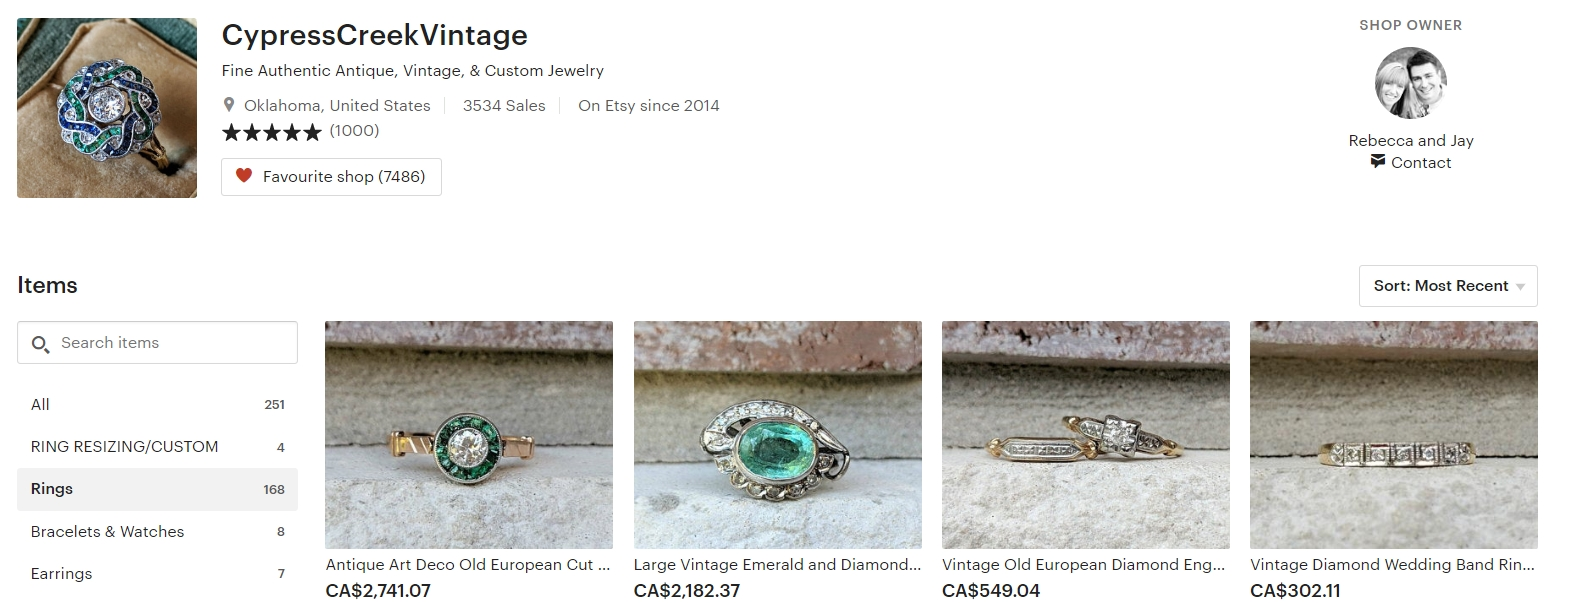 vintage engagement rings by CypressCreekVintage on Etsy